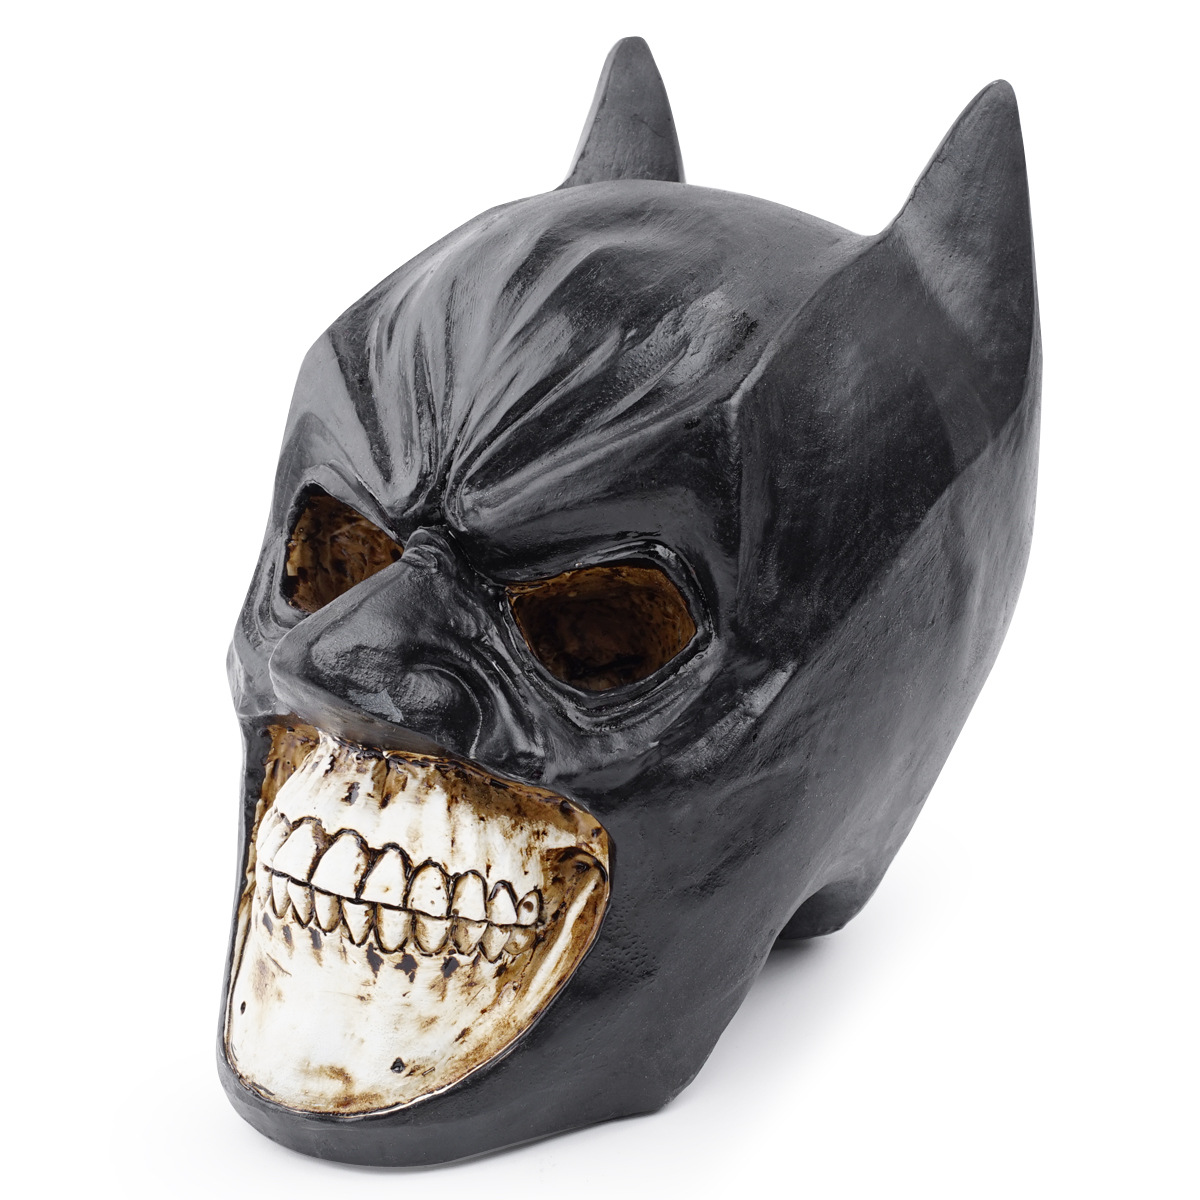 Resin Skull Batman Human Skull Medicine Model Ornaments Halloween Mo Cool Skeleton Skull Head Animal image